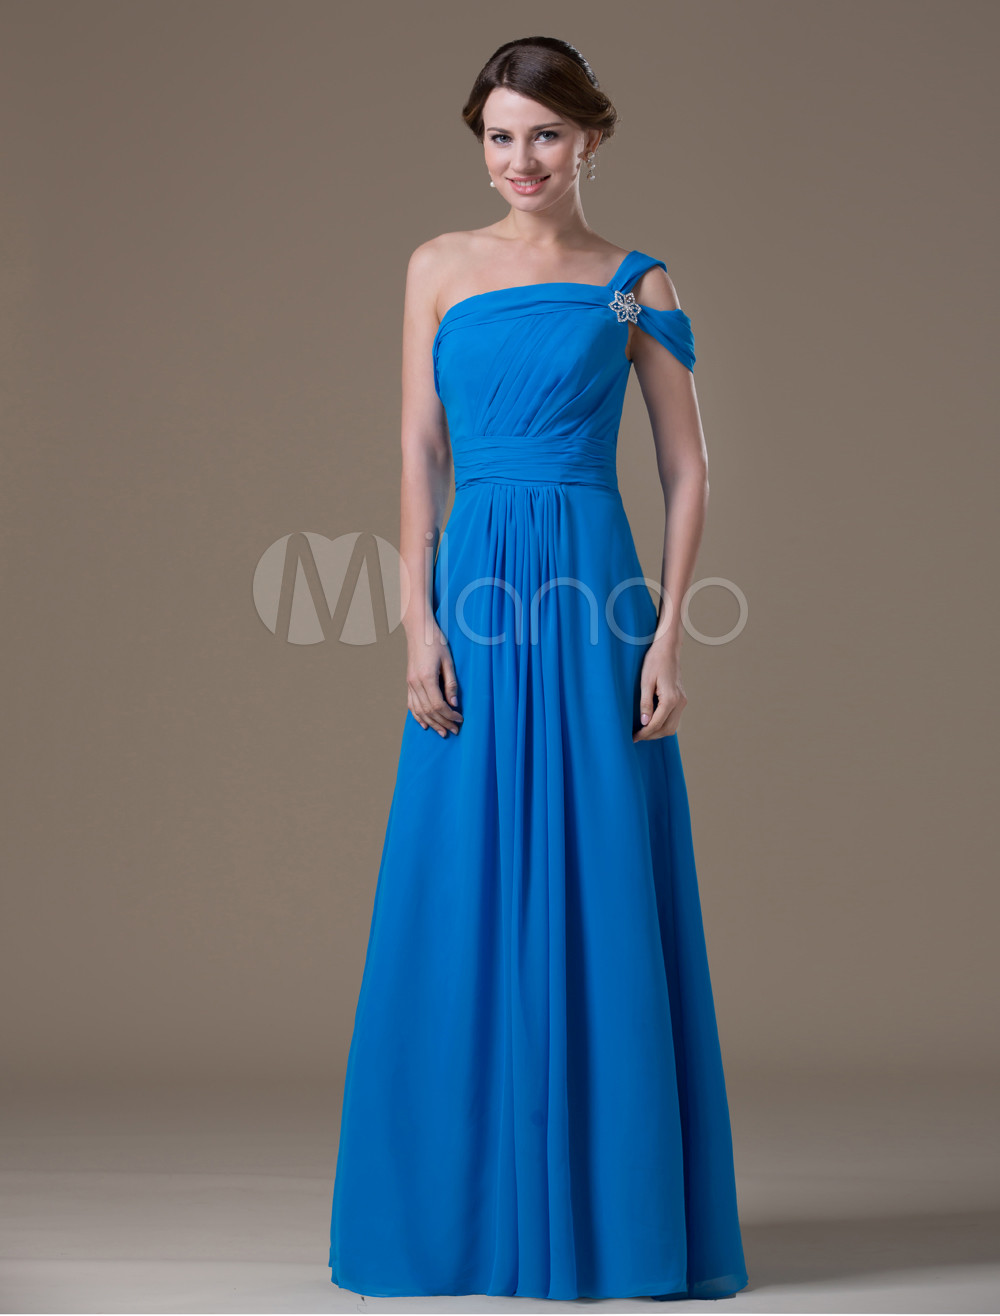 Unique Royal Blue Chiffon One Shoulder Maternity Bridesmaid Dress